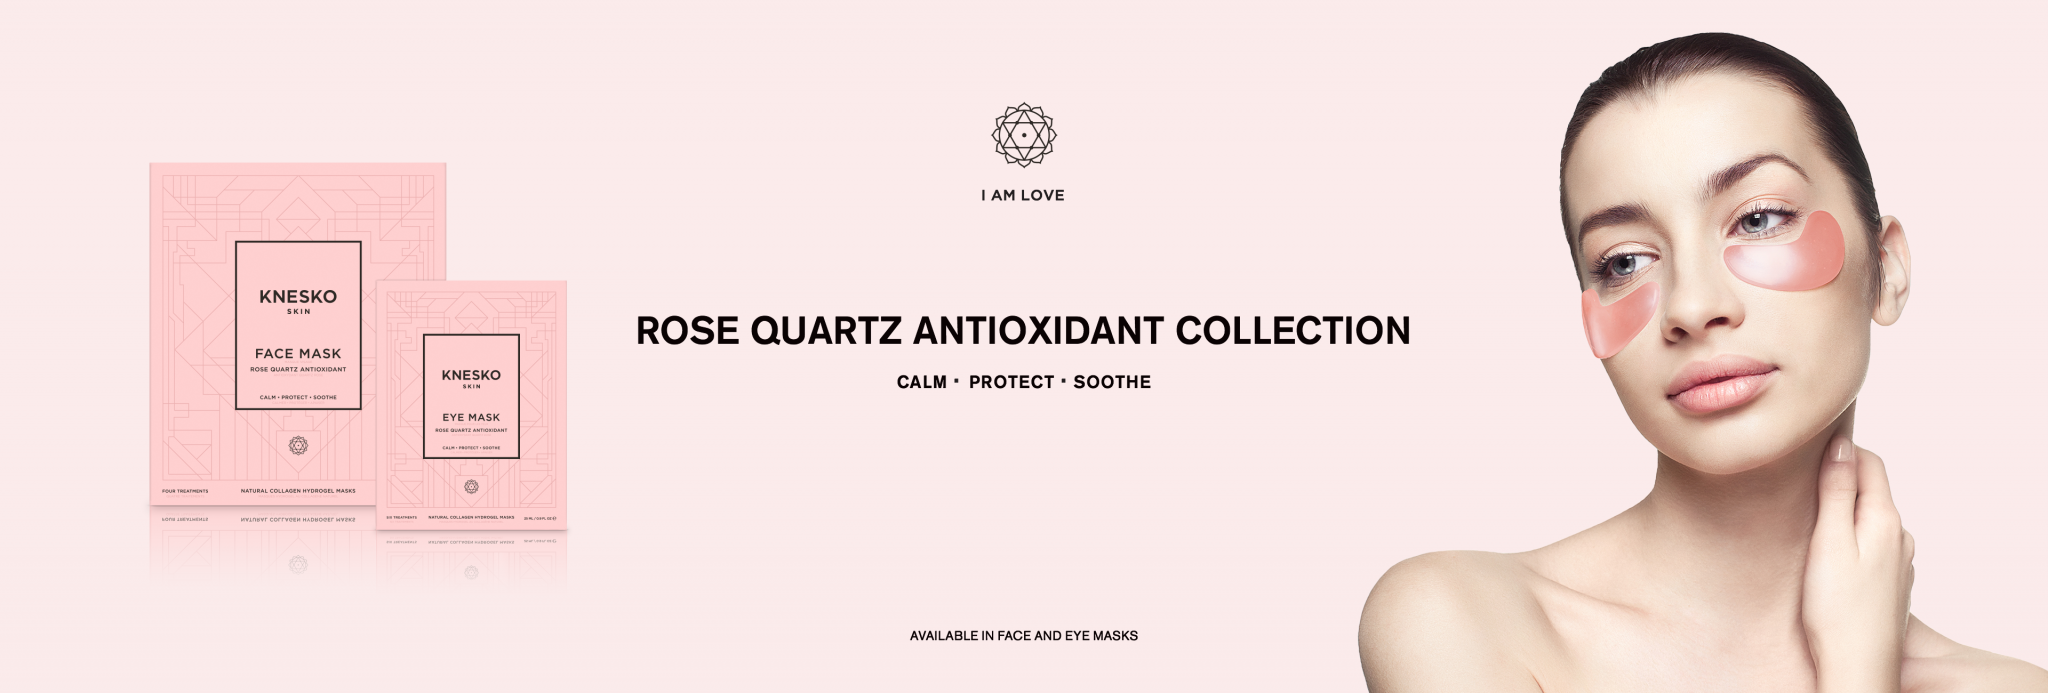 Rose Quartz Antioxidant Collection